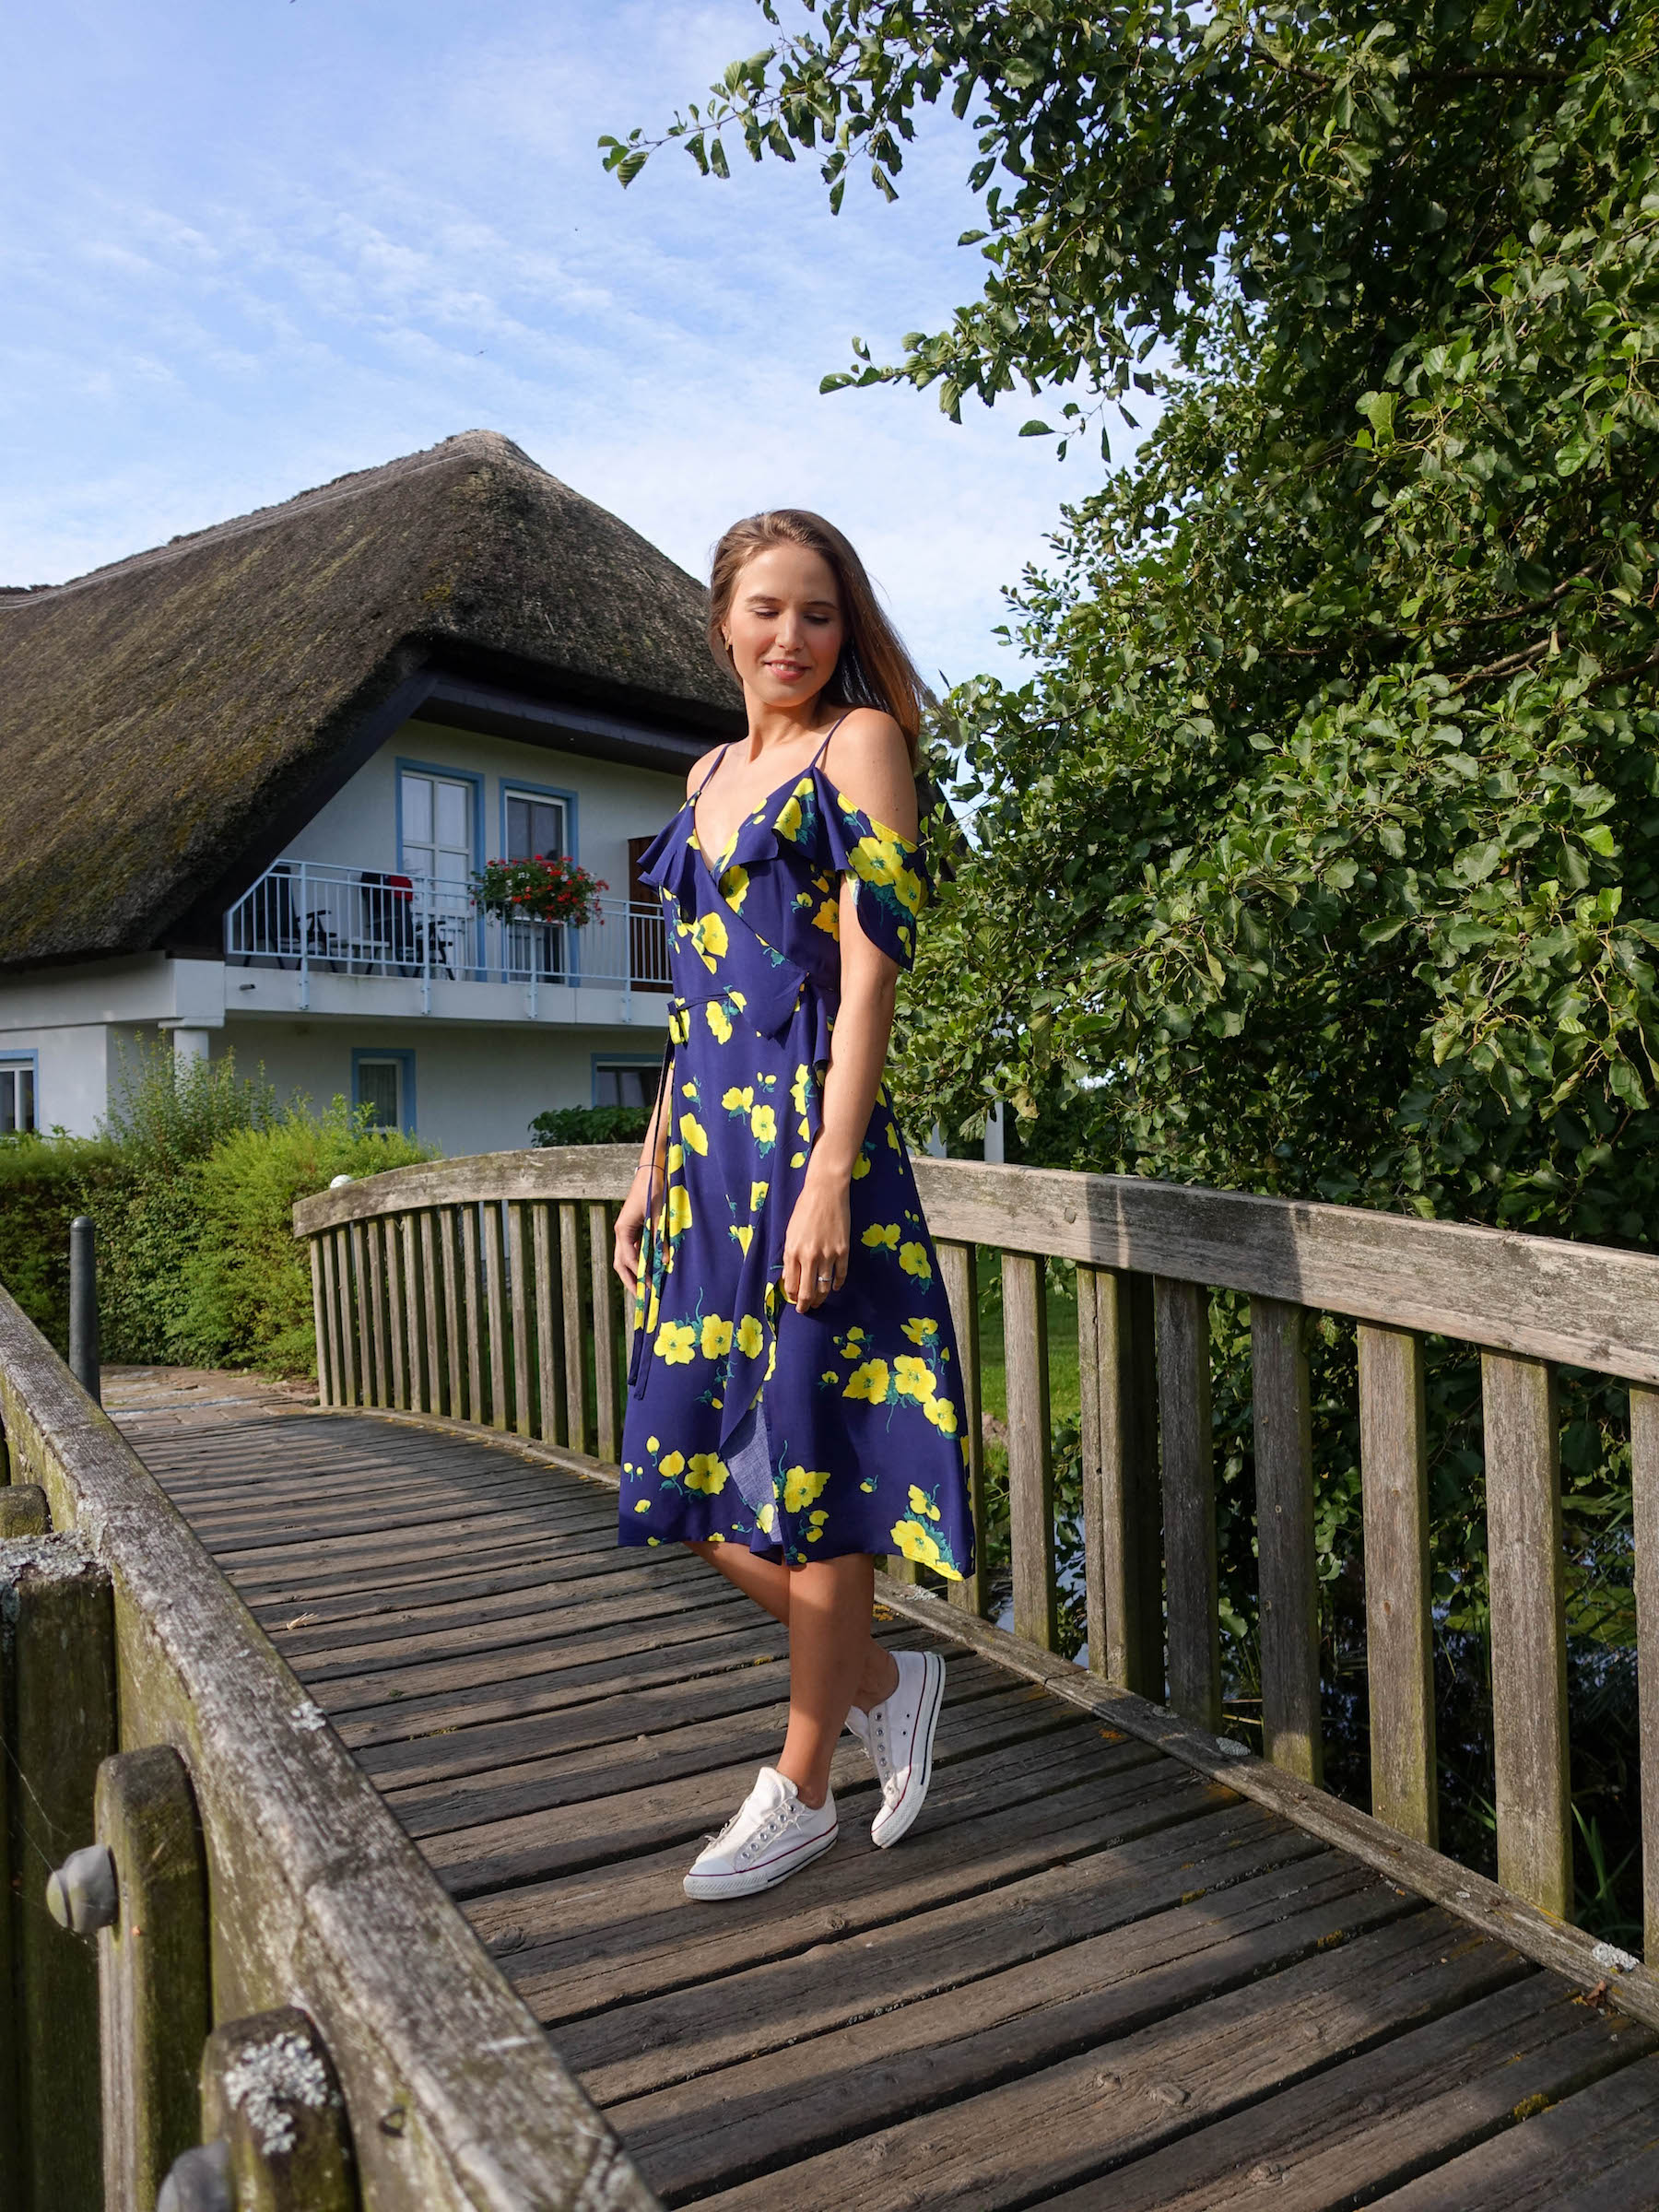 suelovesnyc_susan_fengler_blog_home_office_usedom_strandkorb_weekly_update_wickelkleid_warehouse